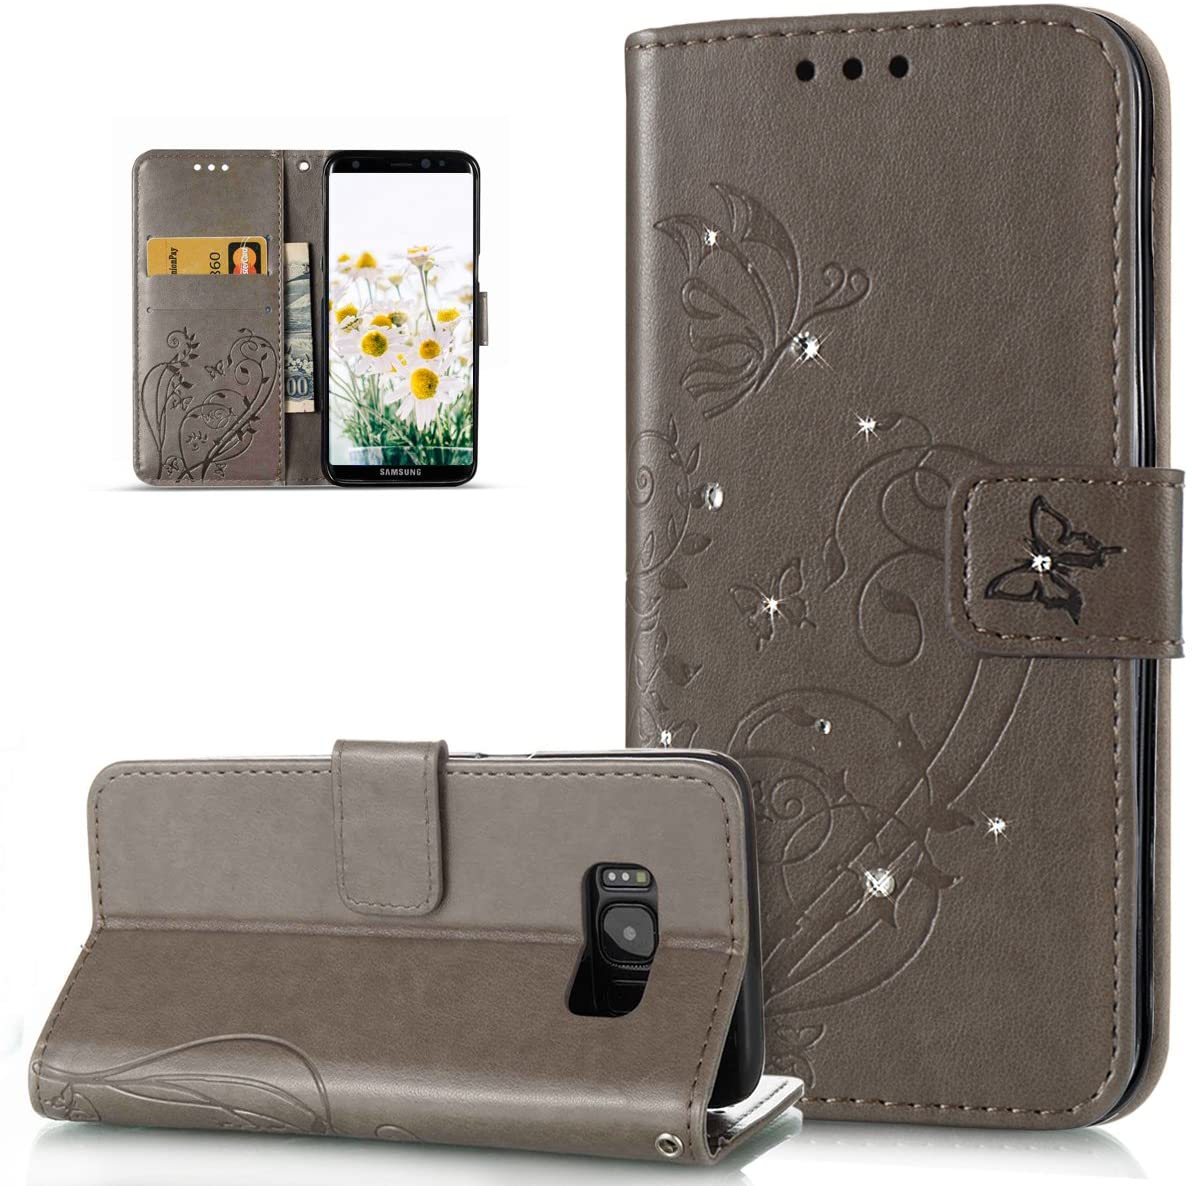 Galaxy S8 Plus Case,Galaxy S8 Plus Cover,Bing Glitter Diamond Embossing Flower Vines Butterfly Flip Folio Wallet Case PU Leather Stand Protective Case Cover for Samsung Galaxy S8 Plus,Gray